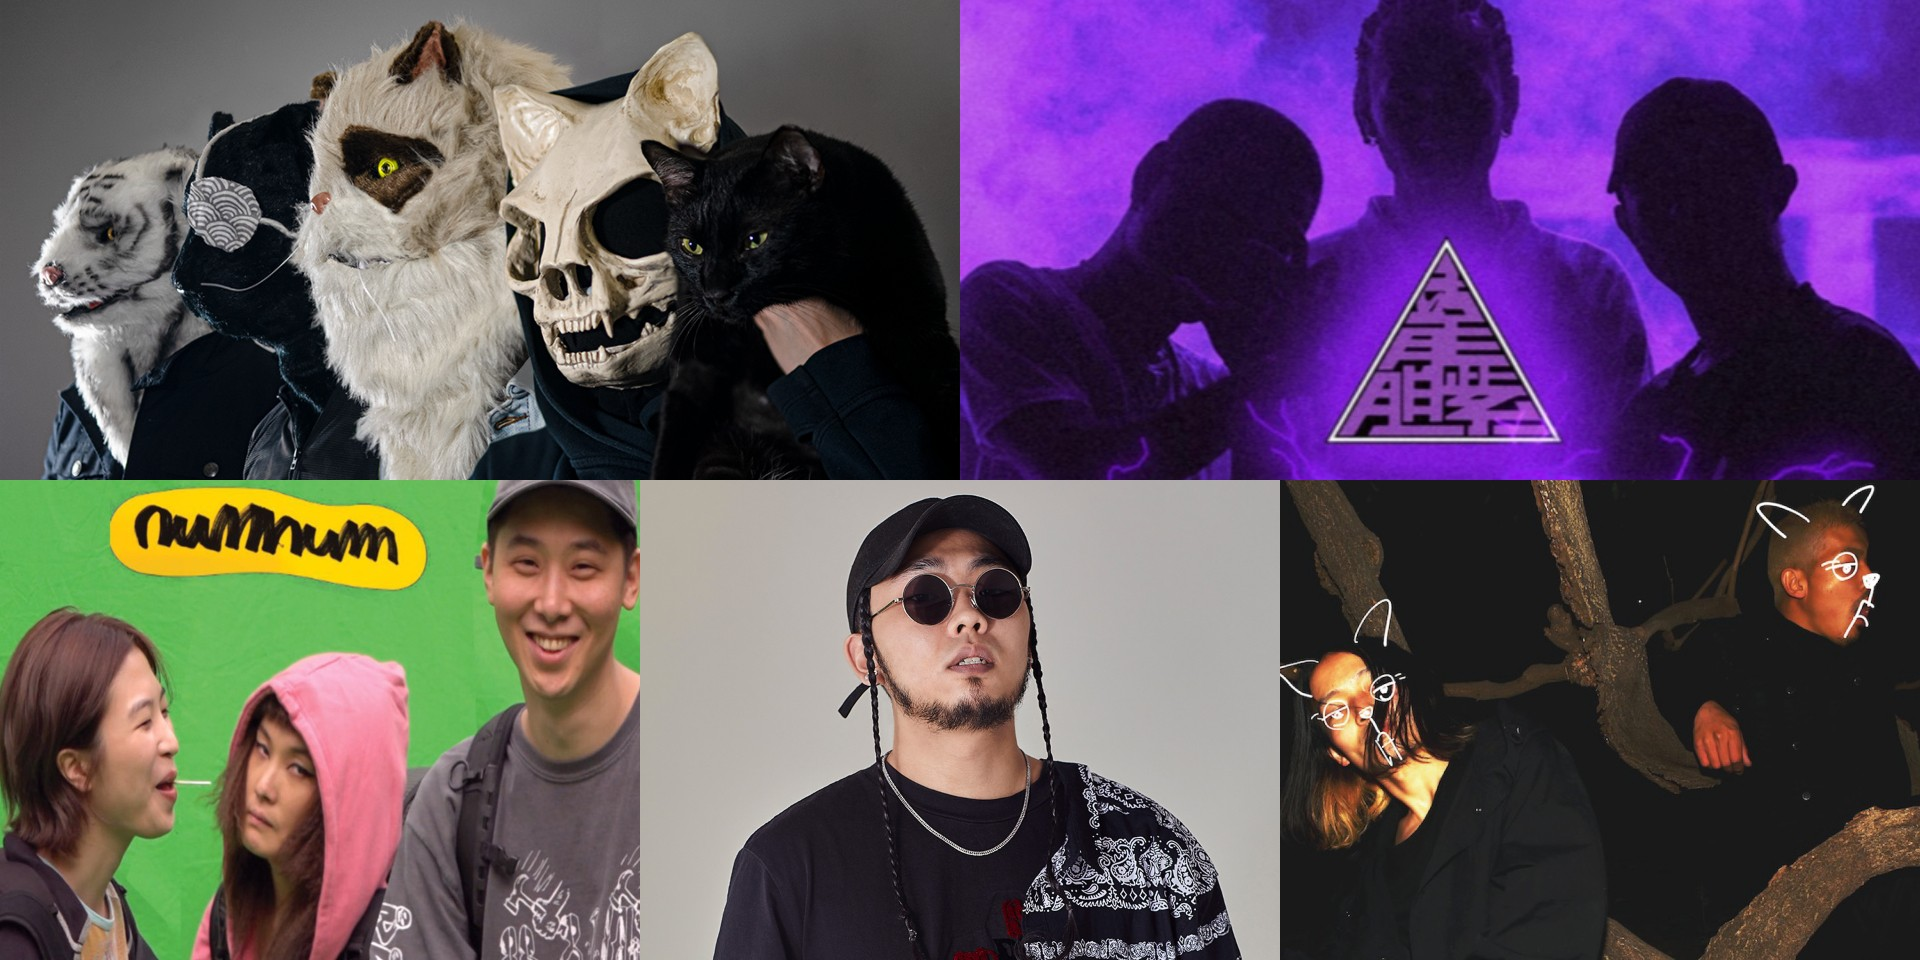 Vans Musicians Wanted Asia-Pacific top 5 finalists revealed: Ultra Mega Cat Attack from Singapore and regional finalists Num Num, H4RDY, Niko Niko Tan Tan, and PurpleSoul